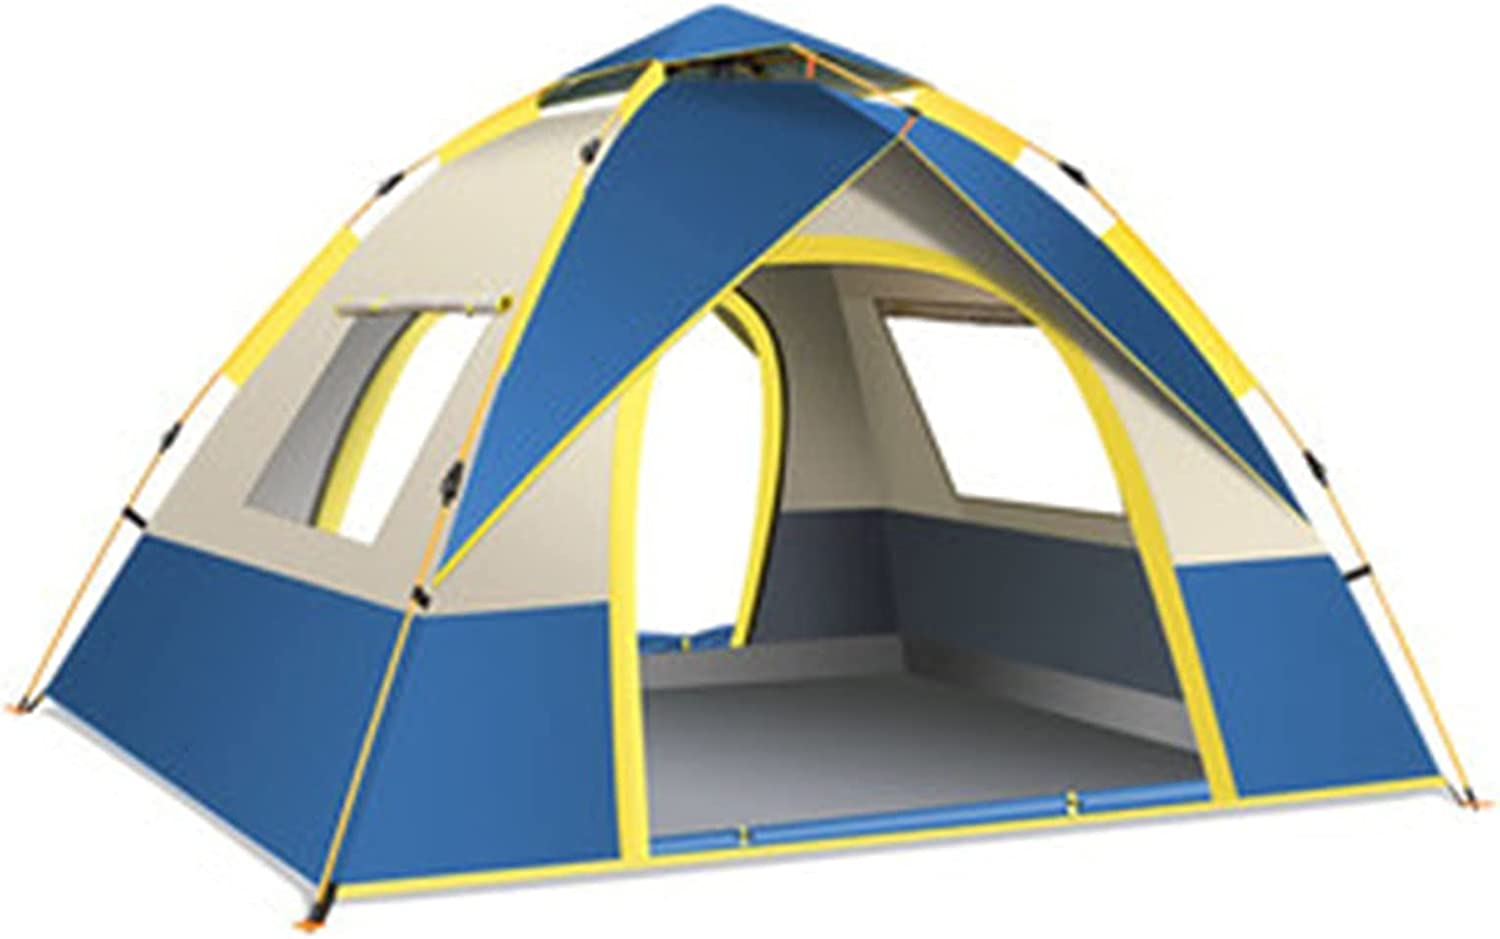 YOT Camping Tents Shelter Max 57% OFF Portable Bag with Max 61% OFF Waterproof Hol Carry